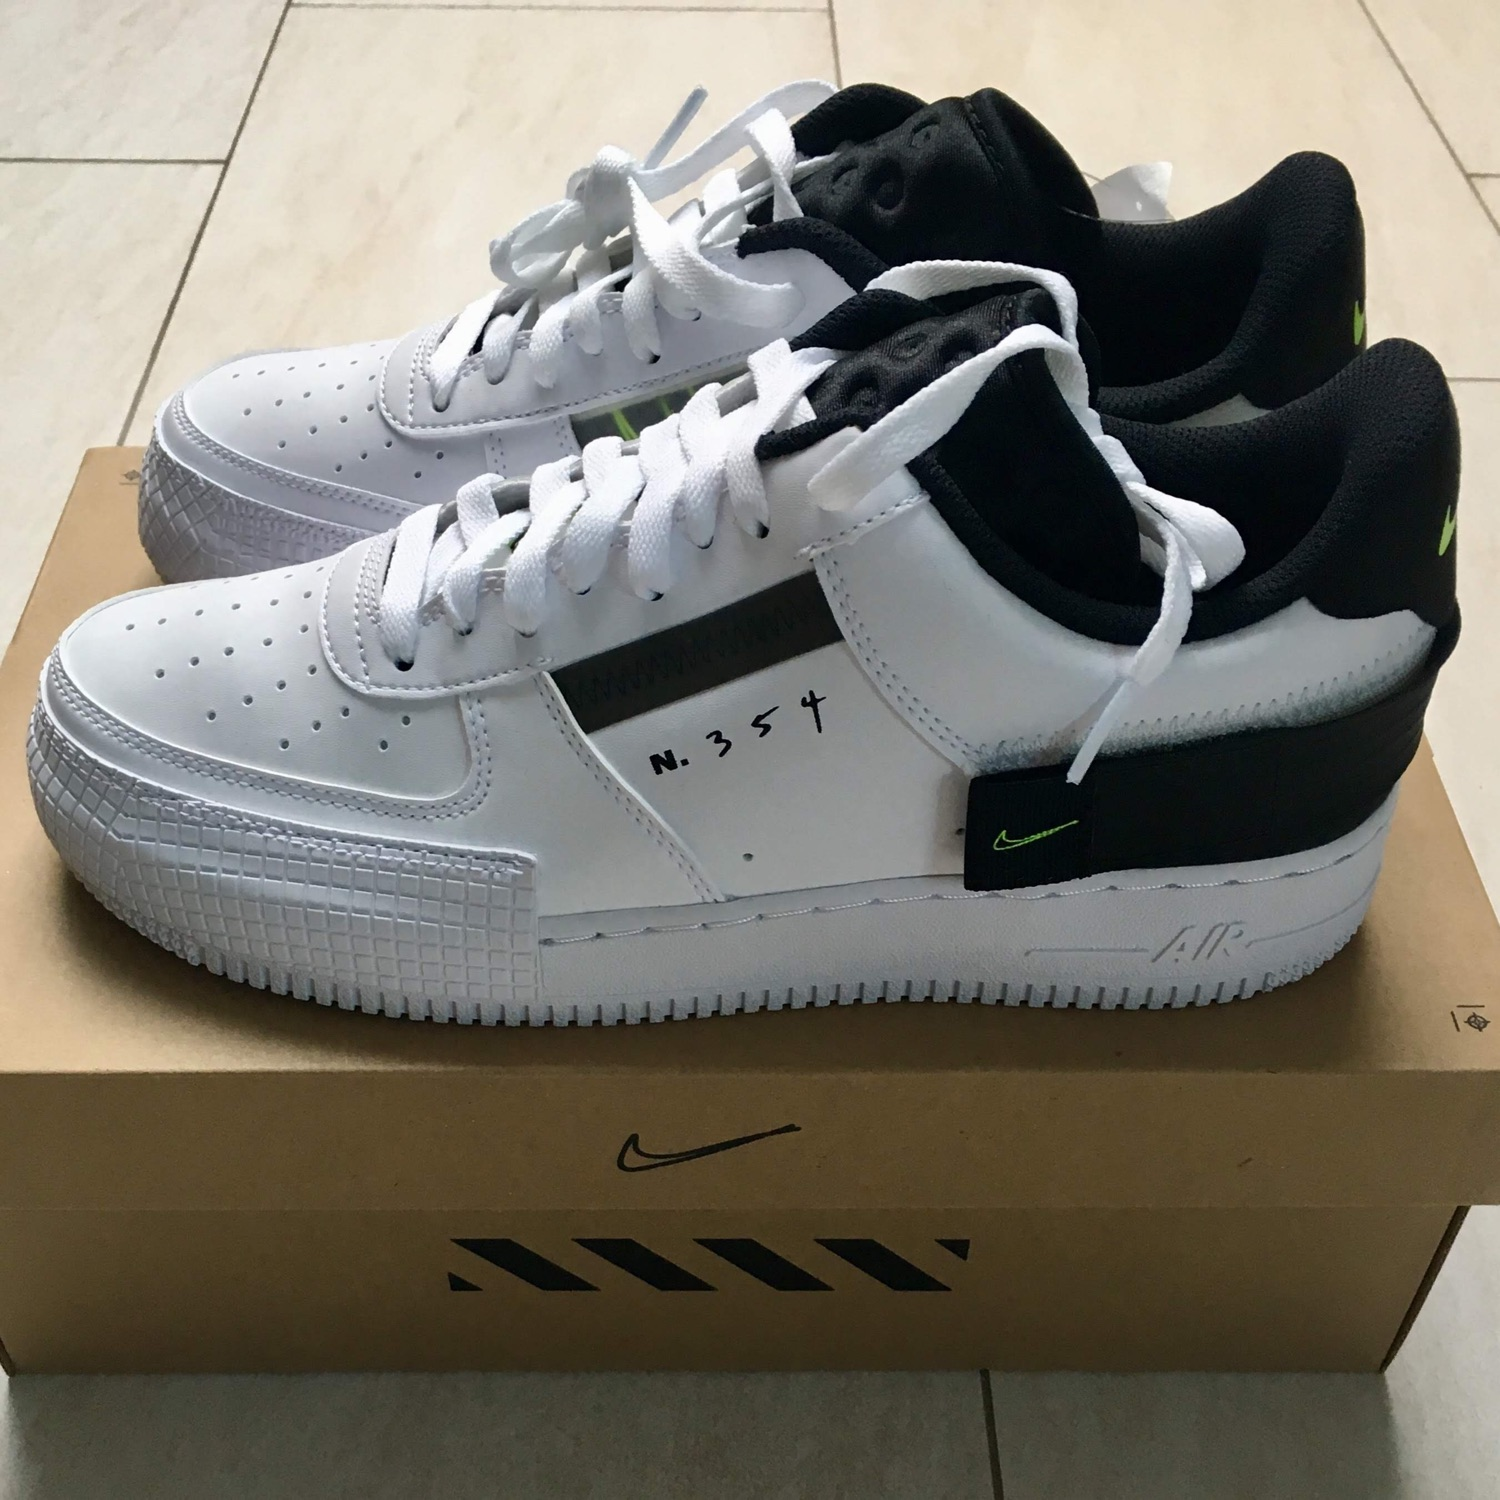 Nike Air Force 1 Low Type White Eu 45,5 | Us 11.5